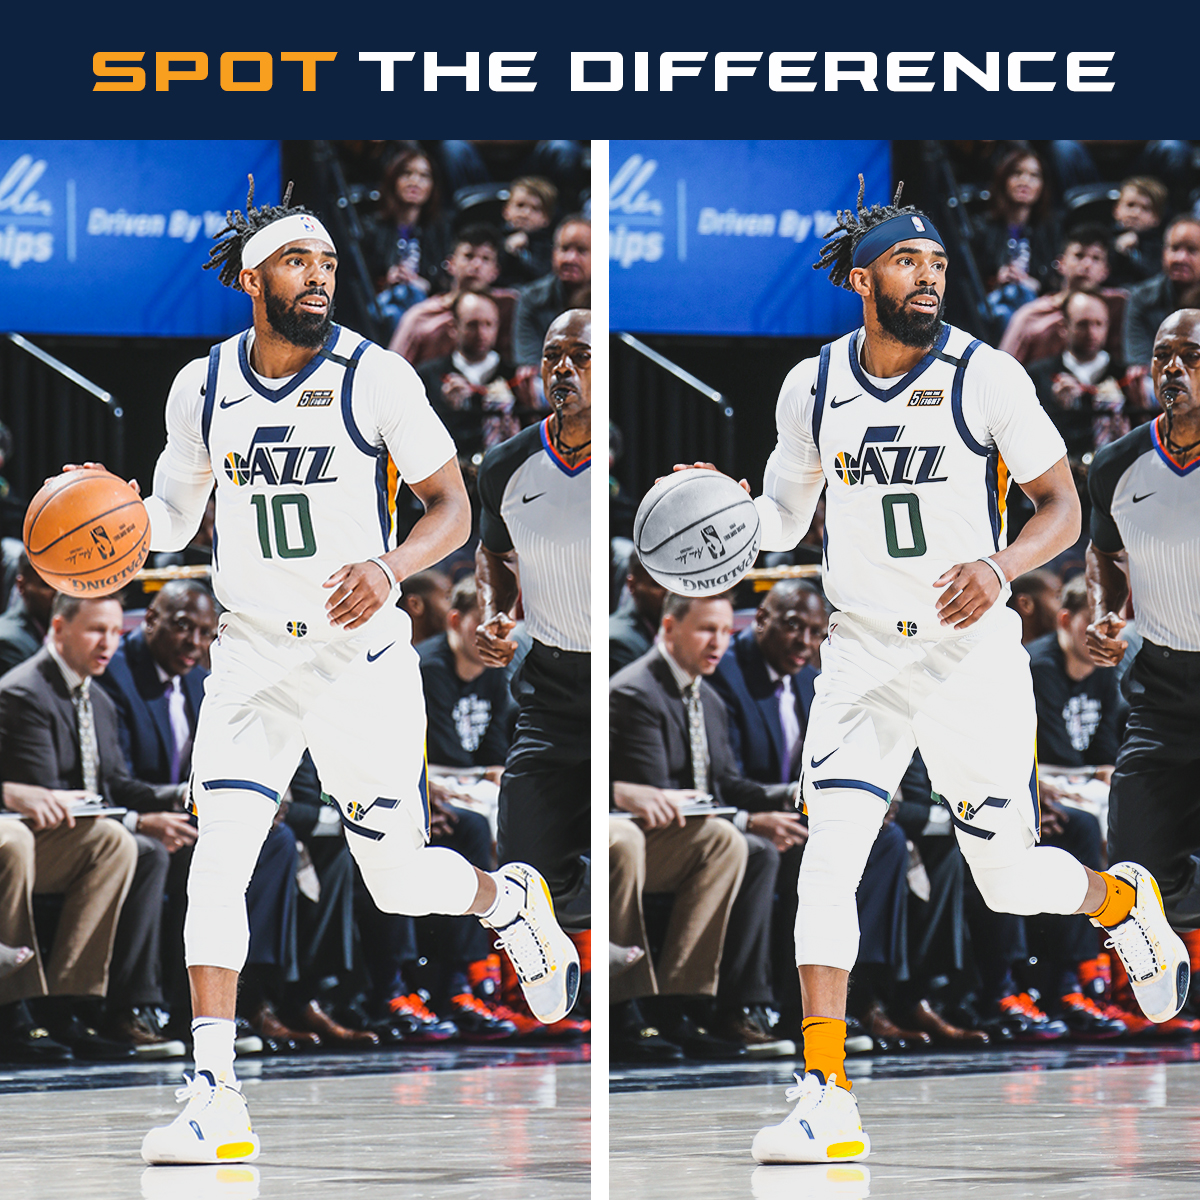 SpotTheDifference_Conley_1200x1200